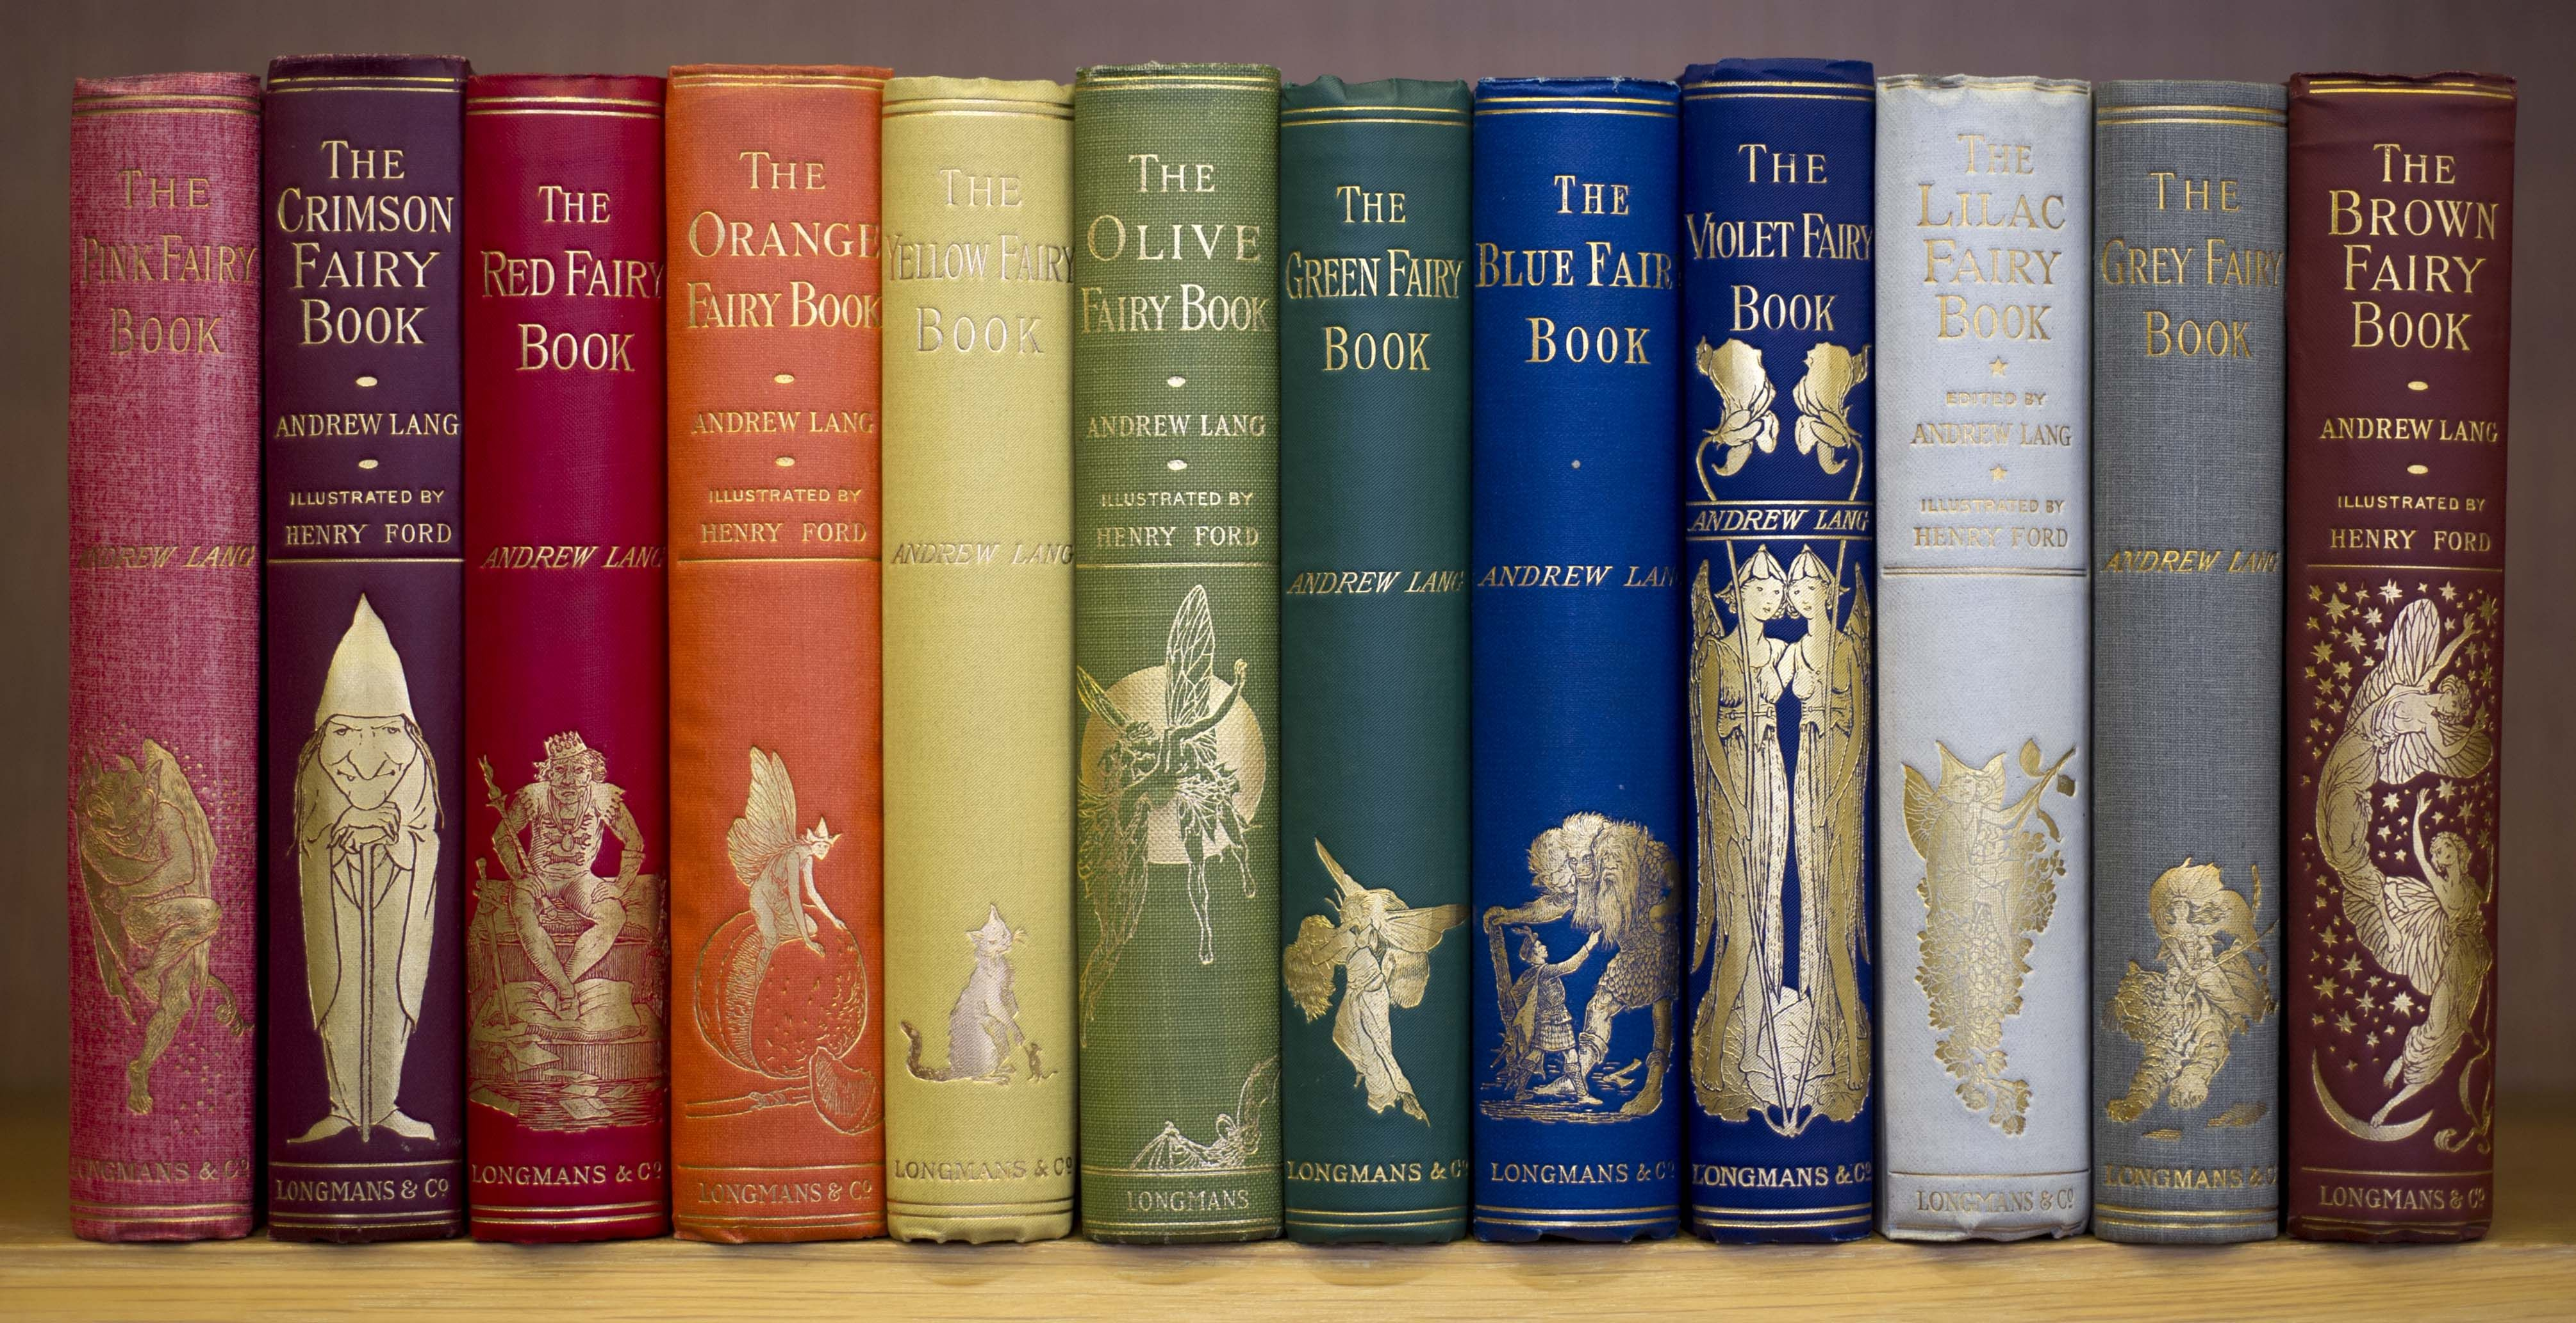 """A series of book spines, arranged in order of color to correspond with the colors of the rainbow. On each spine is a book title, beginning with """"The Pink Fairy Book"""" and """"The Crimson Faiasdk"""